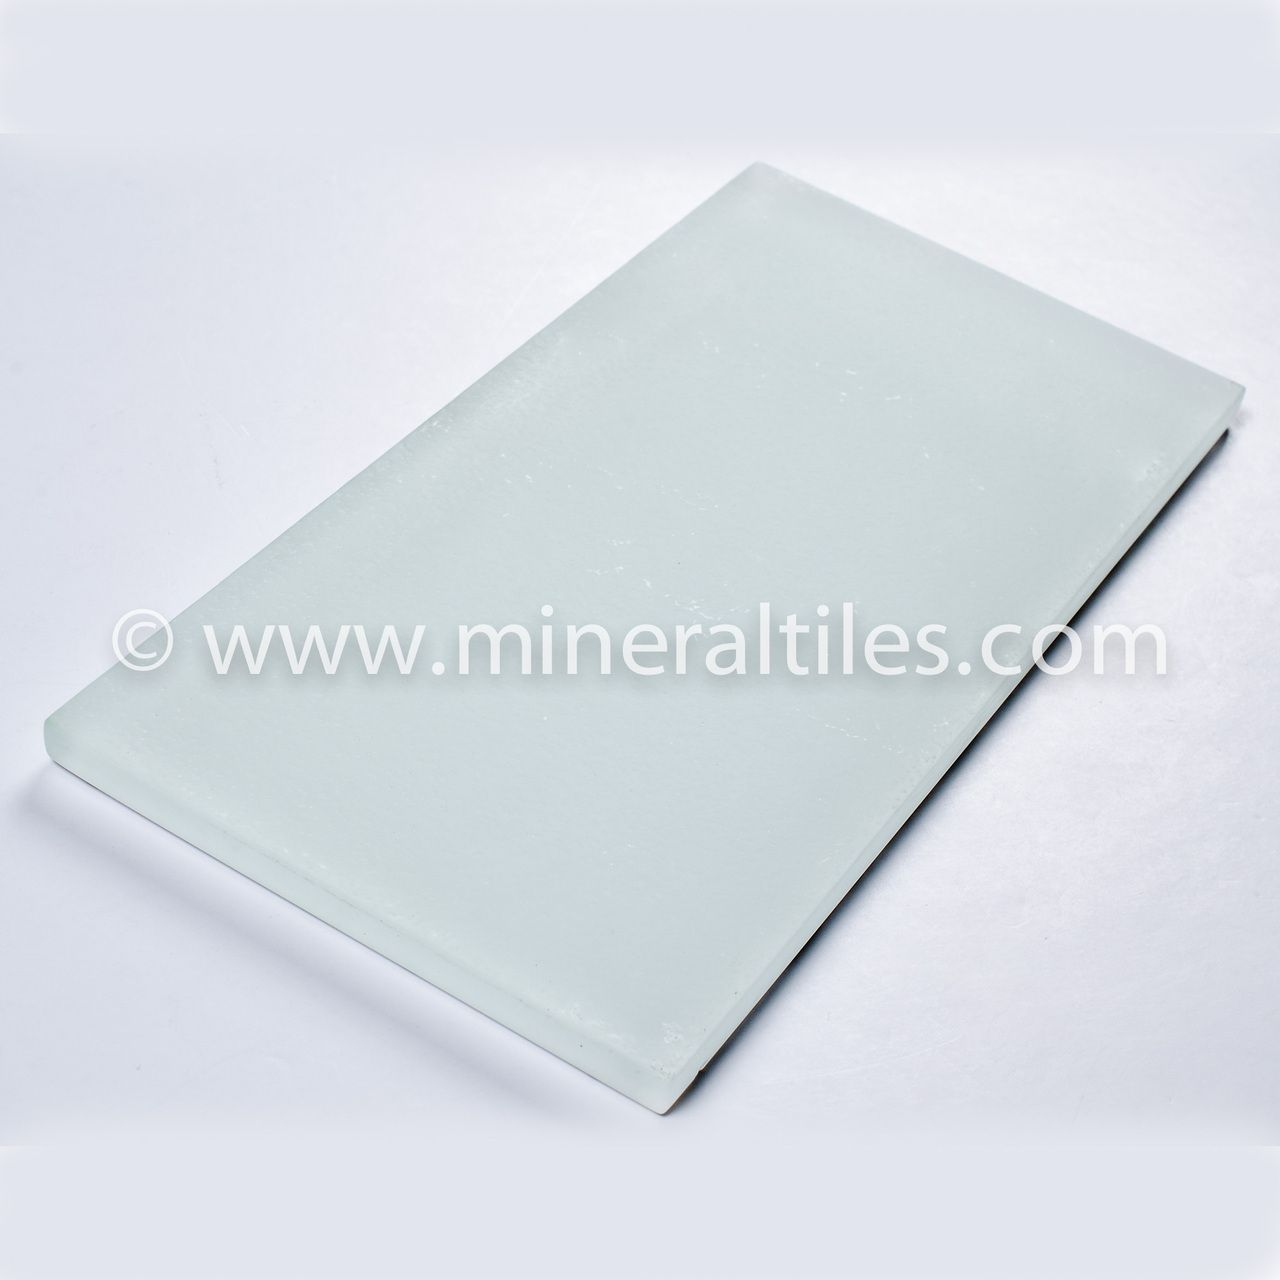 Mineral tiles ocean glass subway tile white frosted 4x8 395 mineral tiles ocean glass subway tile white frosted 4x8 395 httpmineraltilesocean glass subway tile white frosted 4x8 pinterest dailygadgetfo Gallery